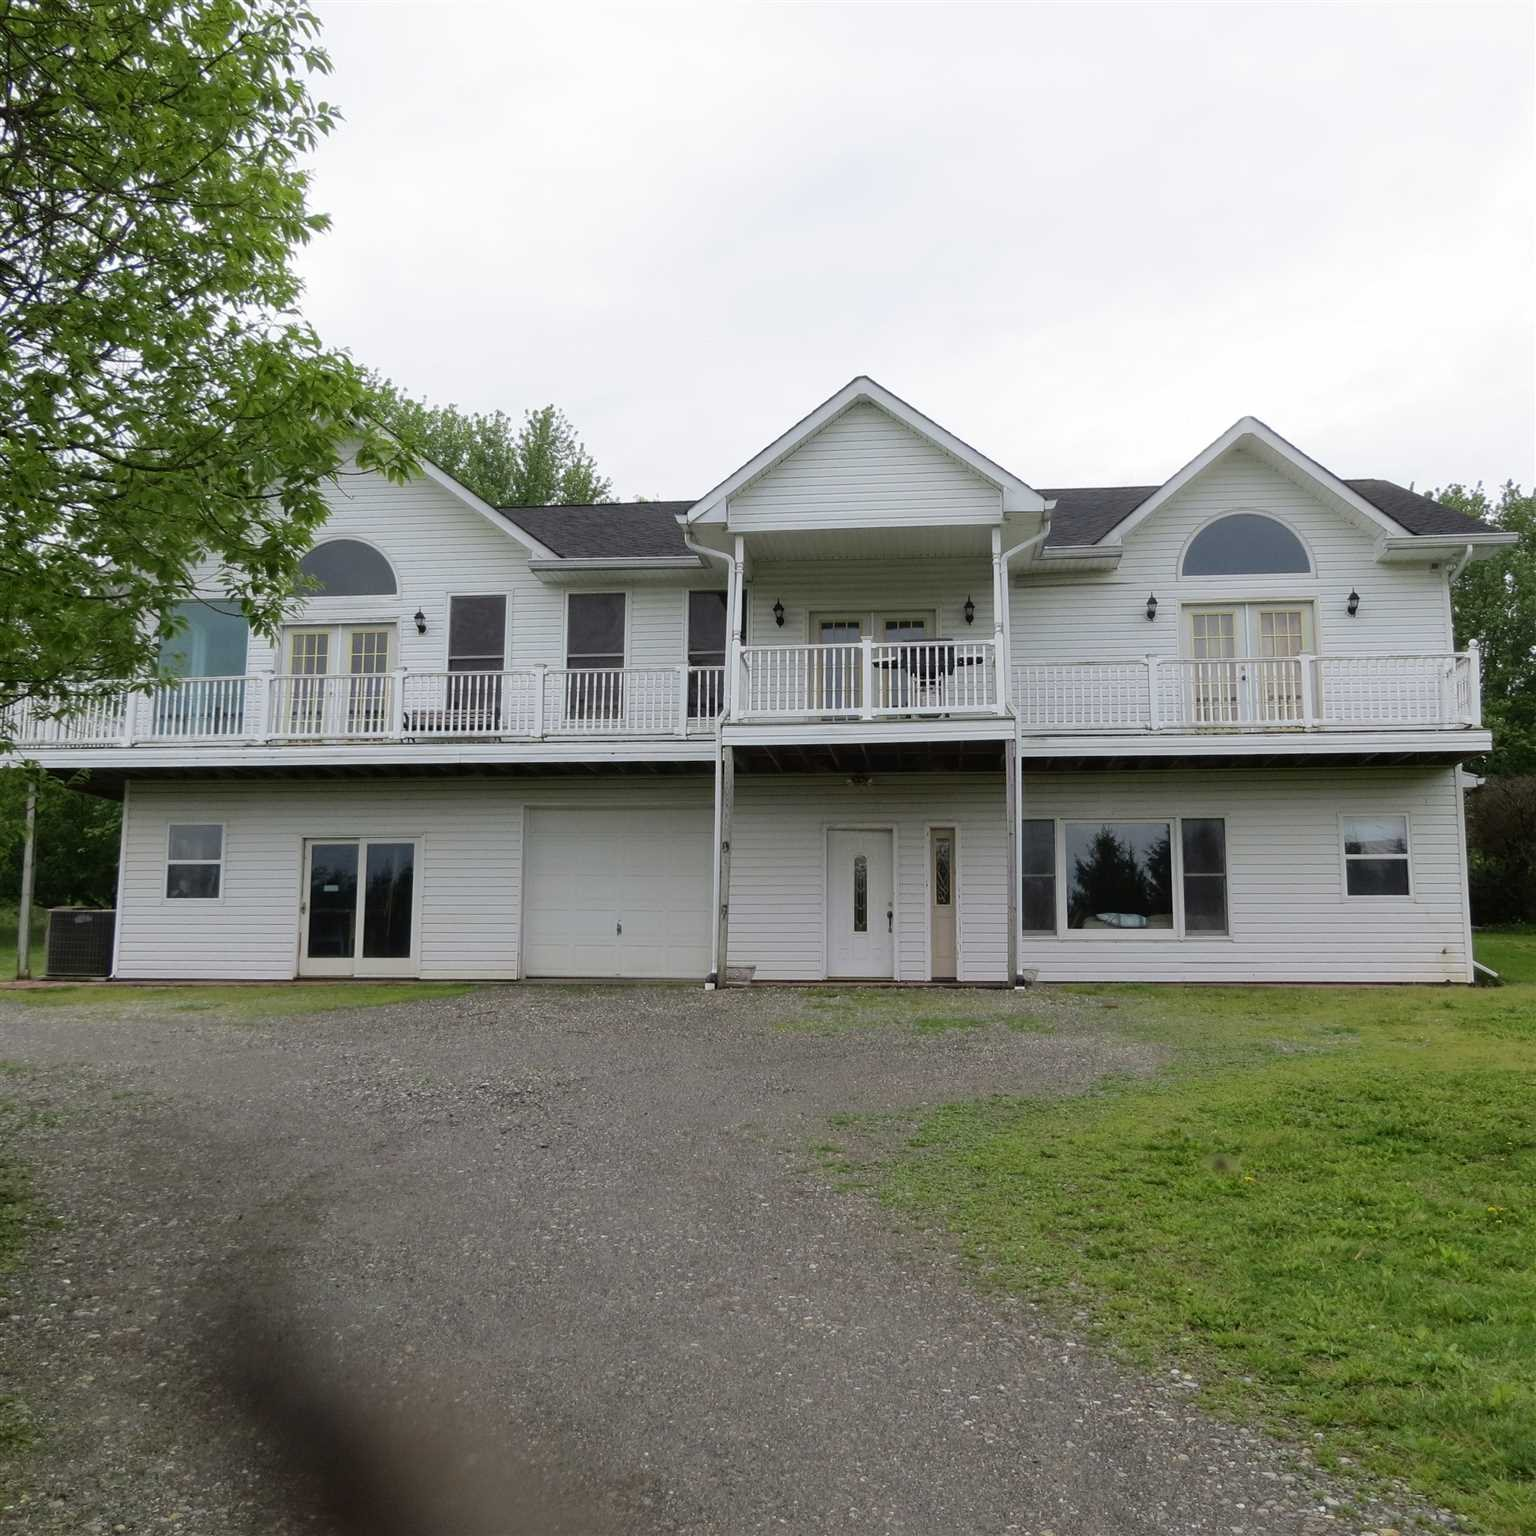 Single Family Home for Sale at 83 POPLAR HILL ROAD 83 POPLAR HILL ROAD Amenia, New York 12592 United States